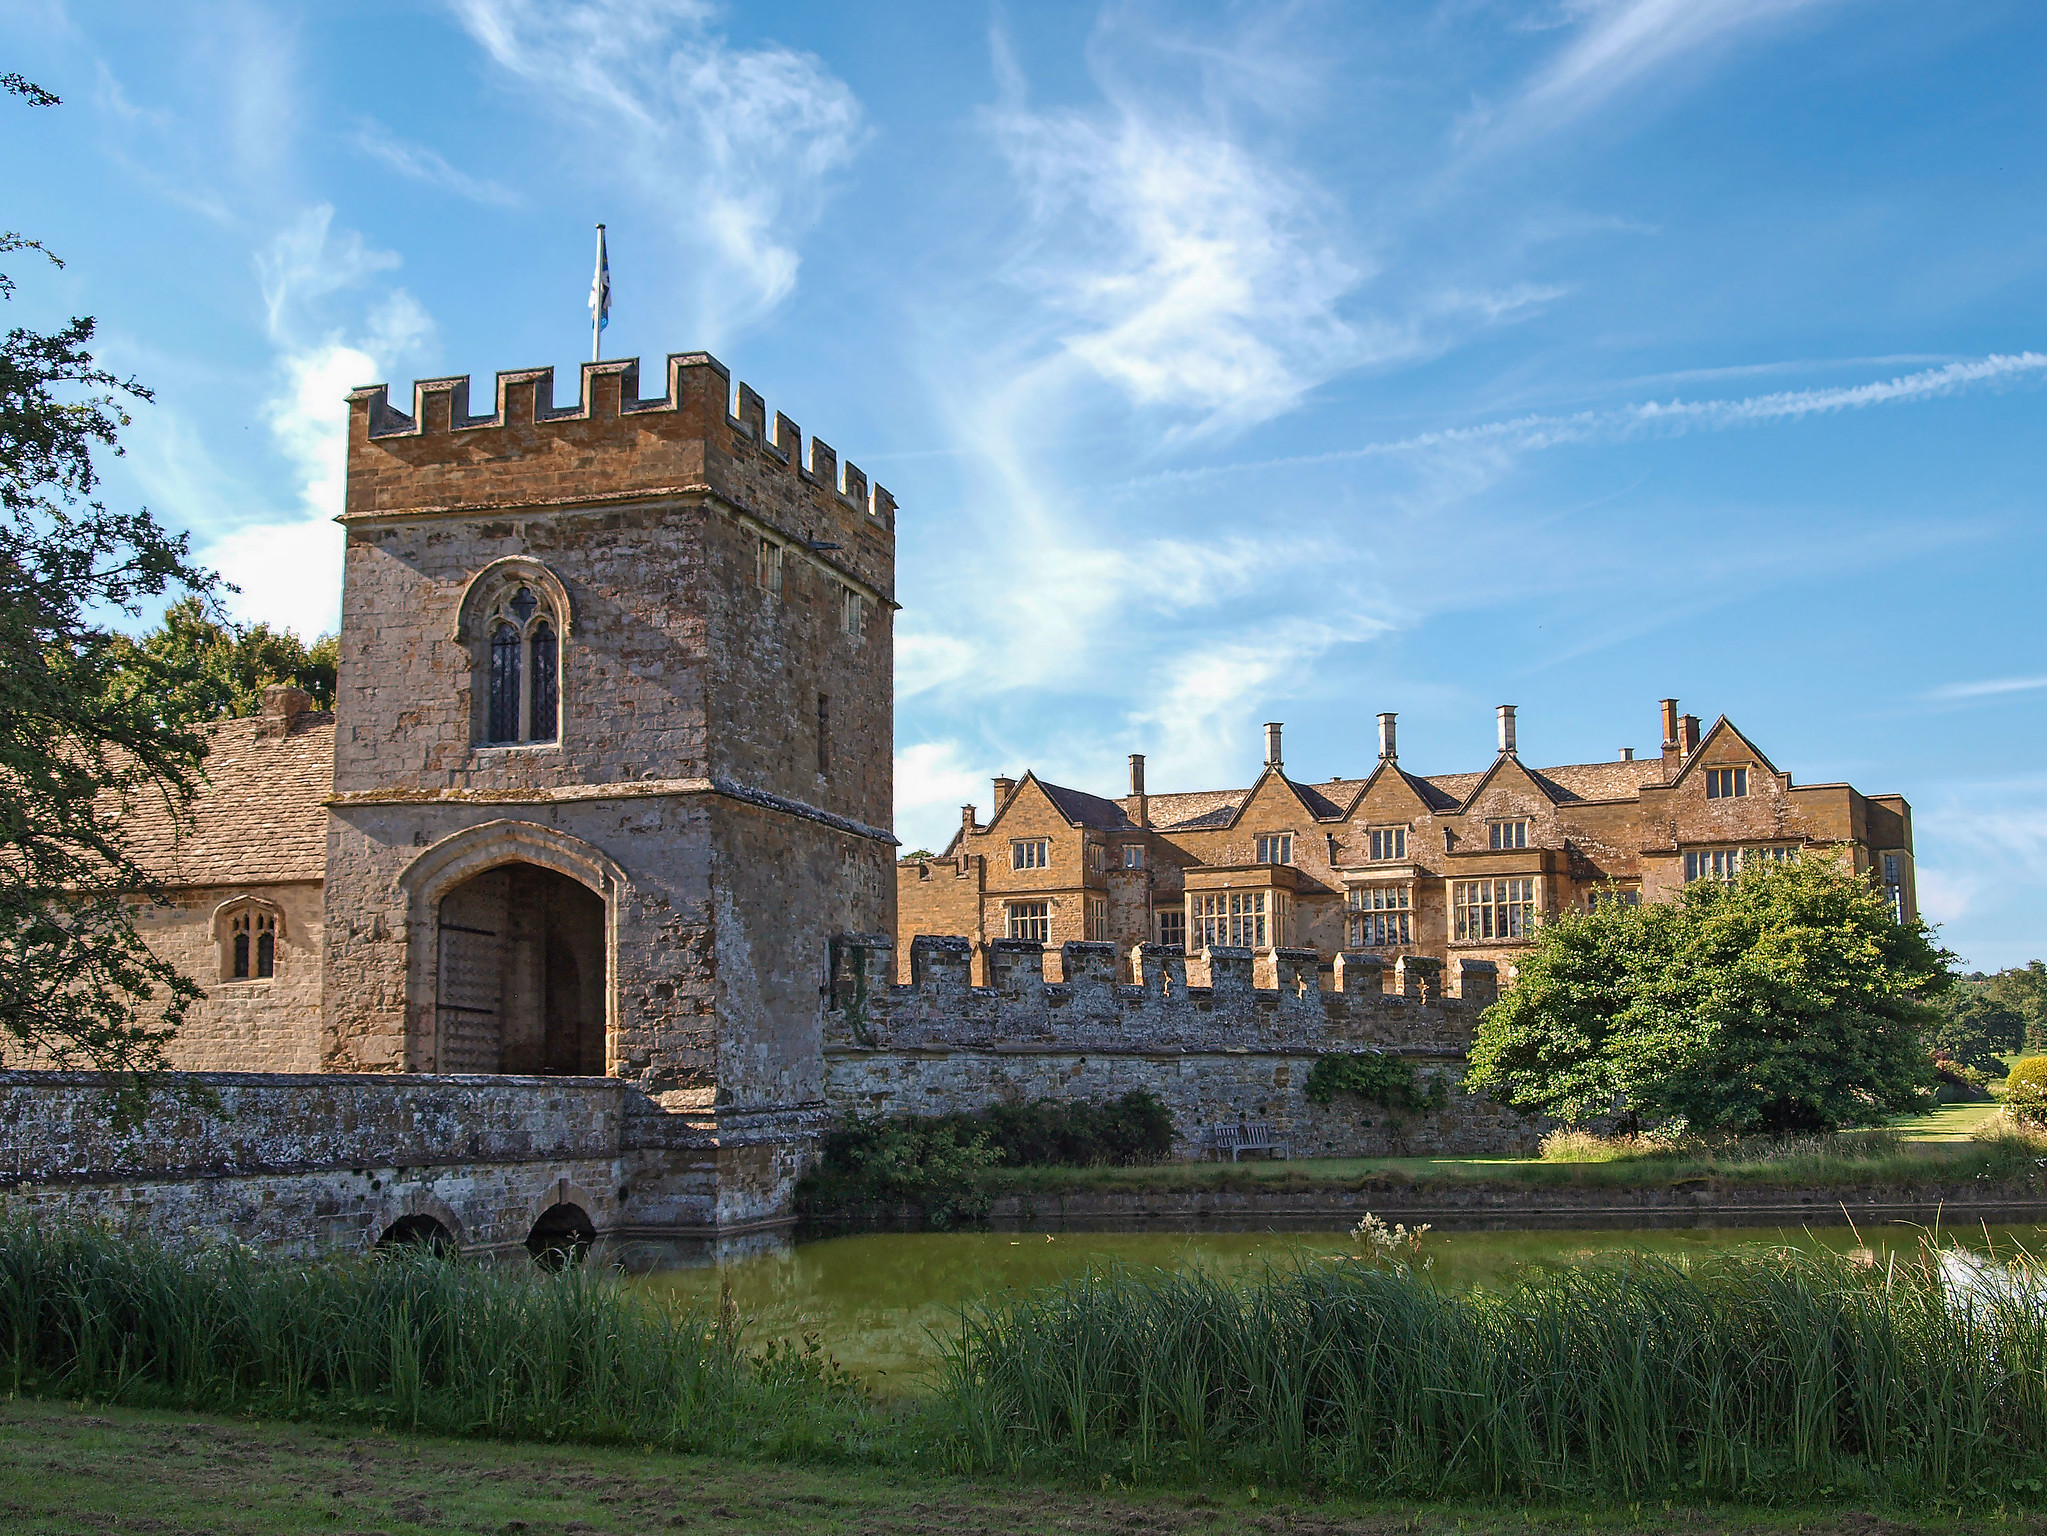 Broughton Castle and Gatehouse from across the moat, Nr Banbury, Oxfordshire by Andrew S Brown.jpg